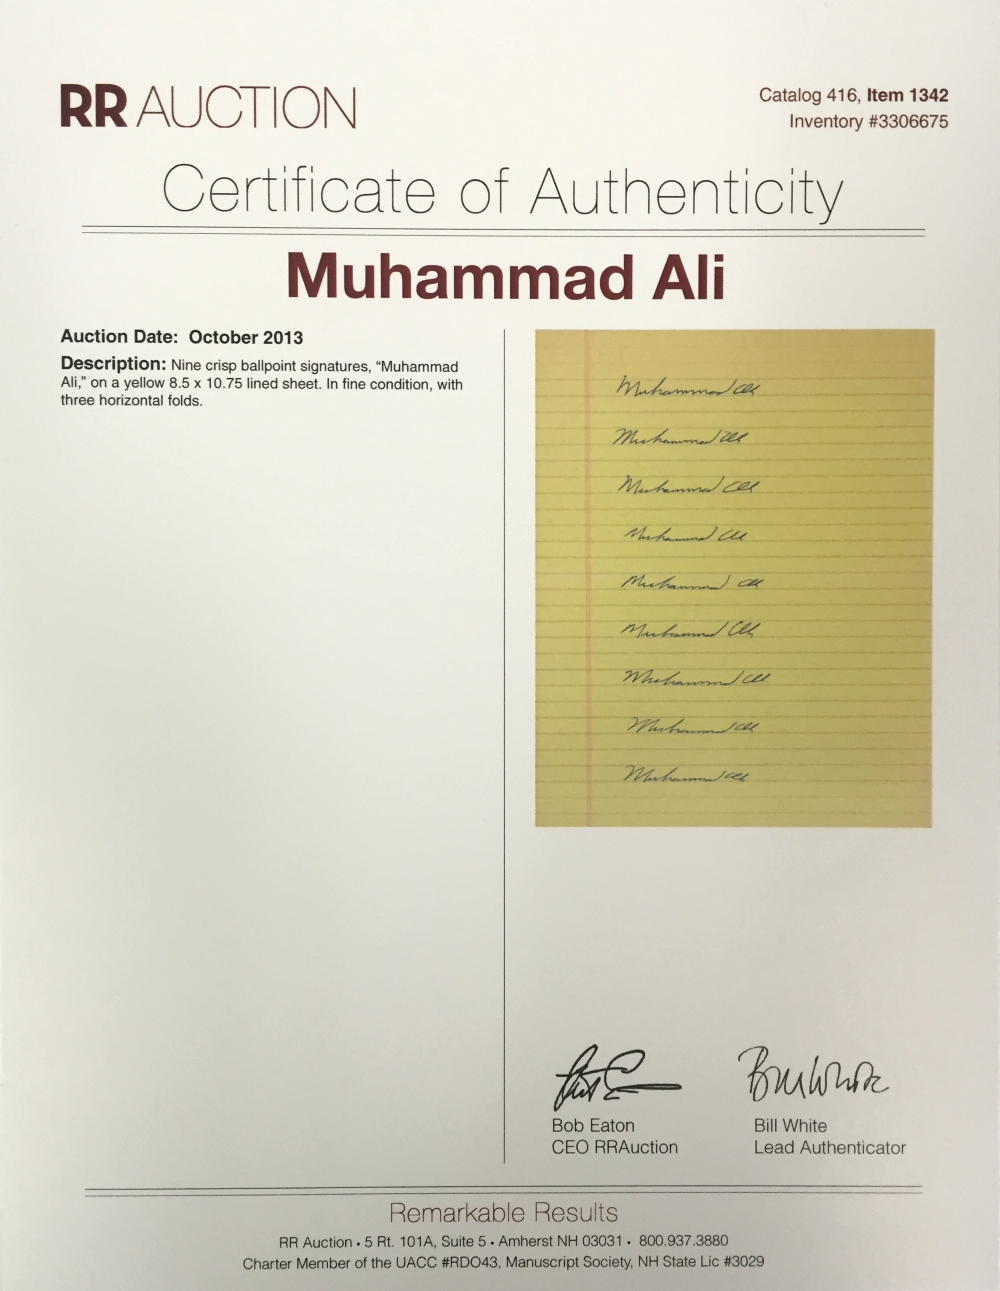 essay on muhammad ali Muhammad ali essays: over 180,000 muhammad ali essays, muhammad ali term papers, muhammad ali research paper, book reports 184 990 essays, term and research papers.